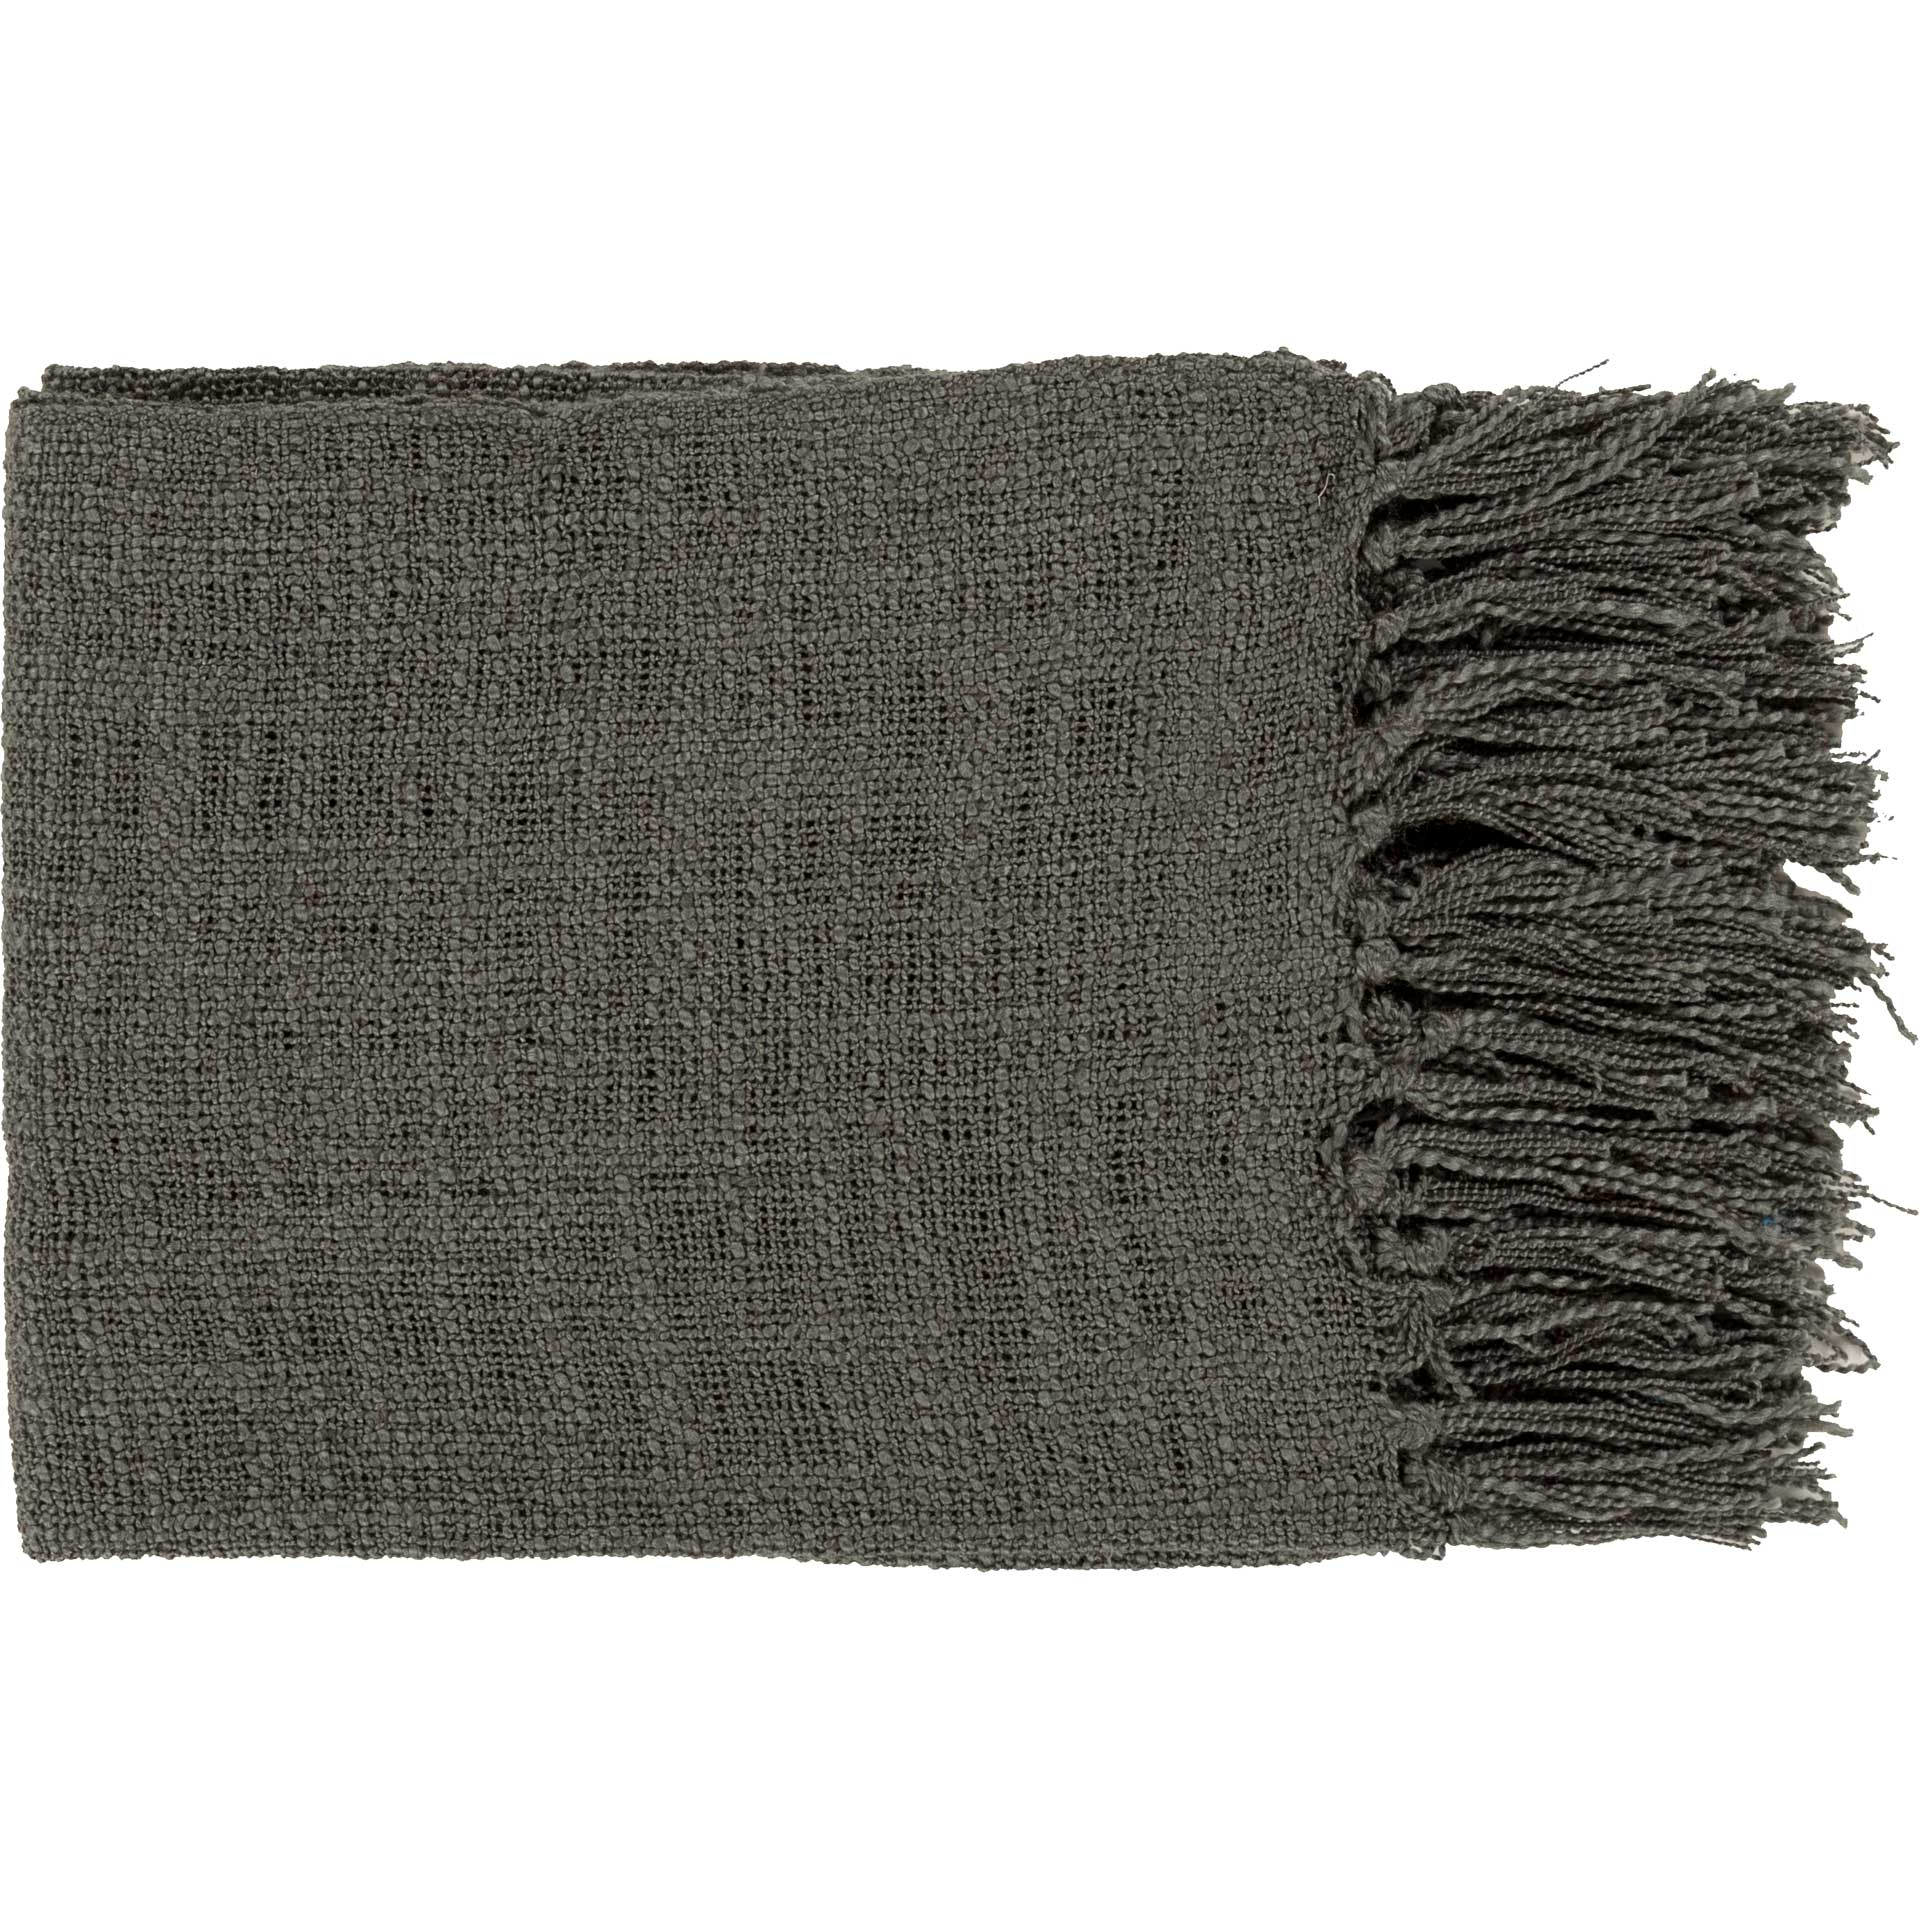 Tiara Throw Charcoal